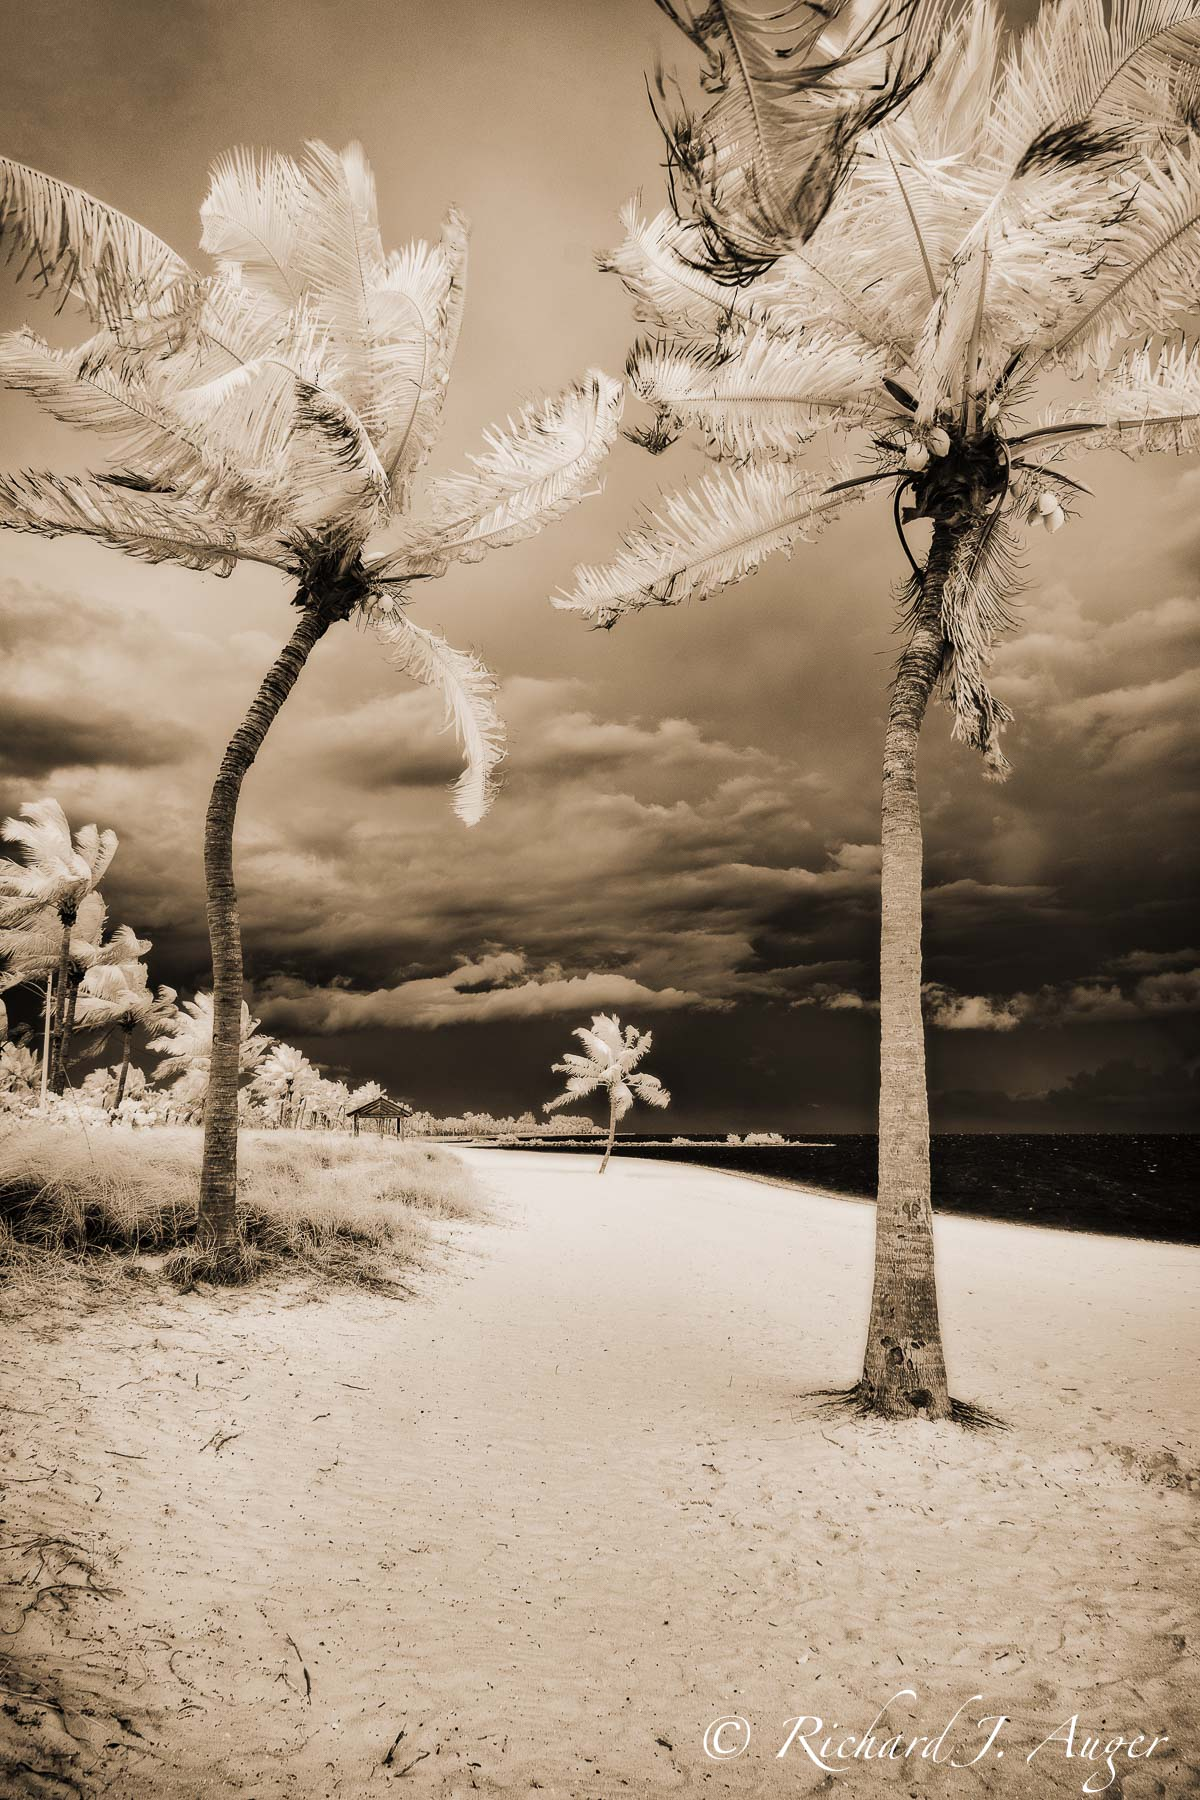 Smathers Beach, Key West, Florida, Palm Trees, stormy, infrared, ocean, landscape, photographer, photography